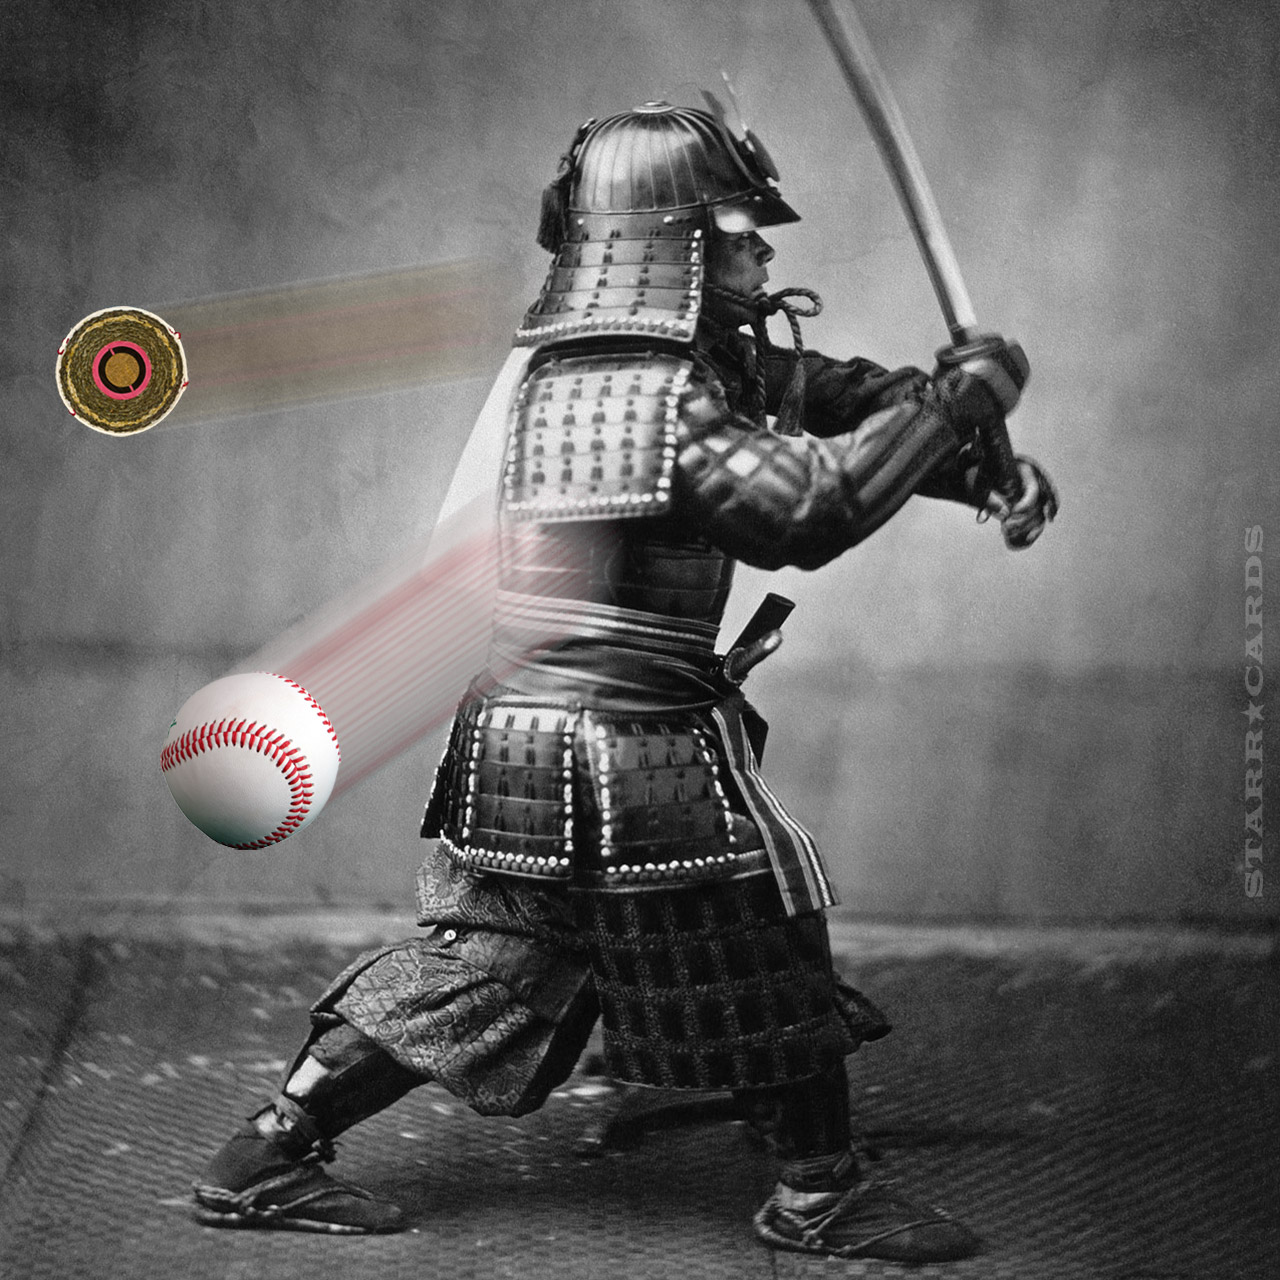 Samurai Isao Machii slices 100 mph baseball in half with his sword